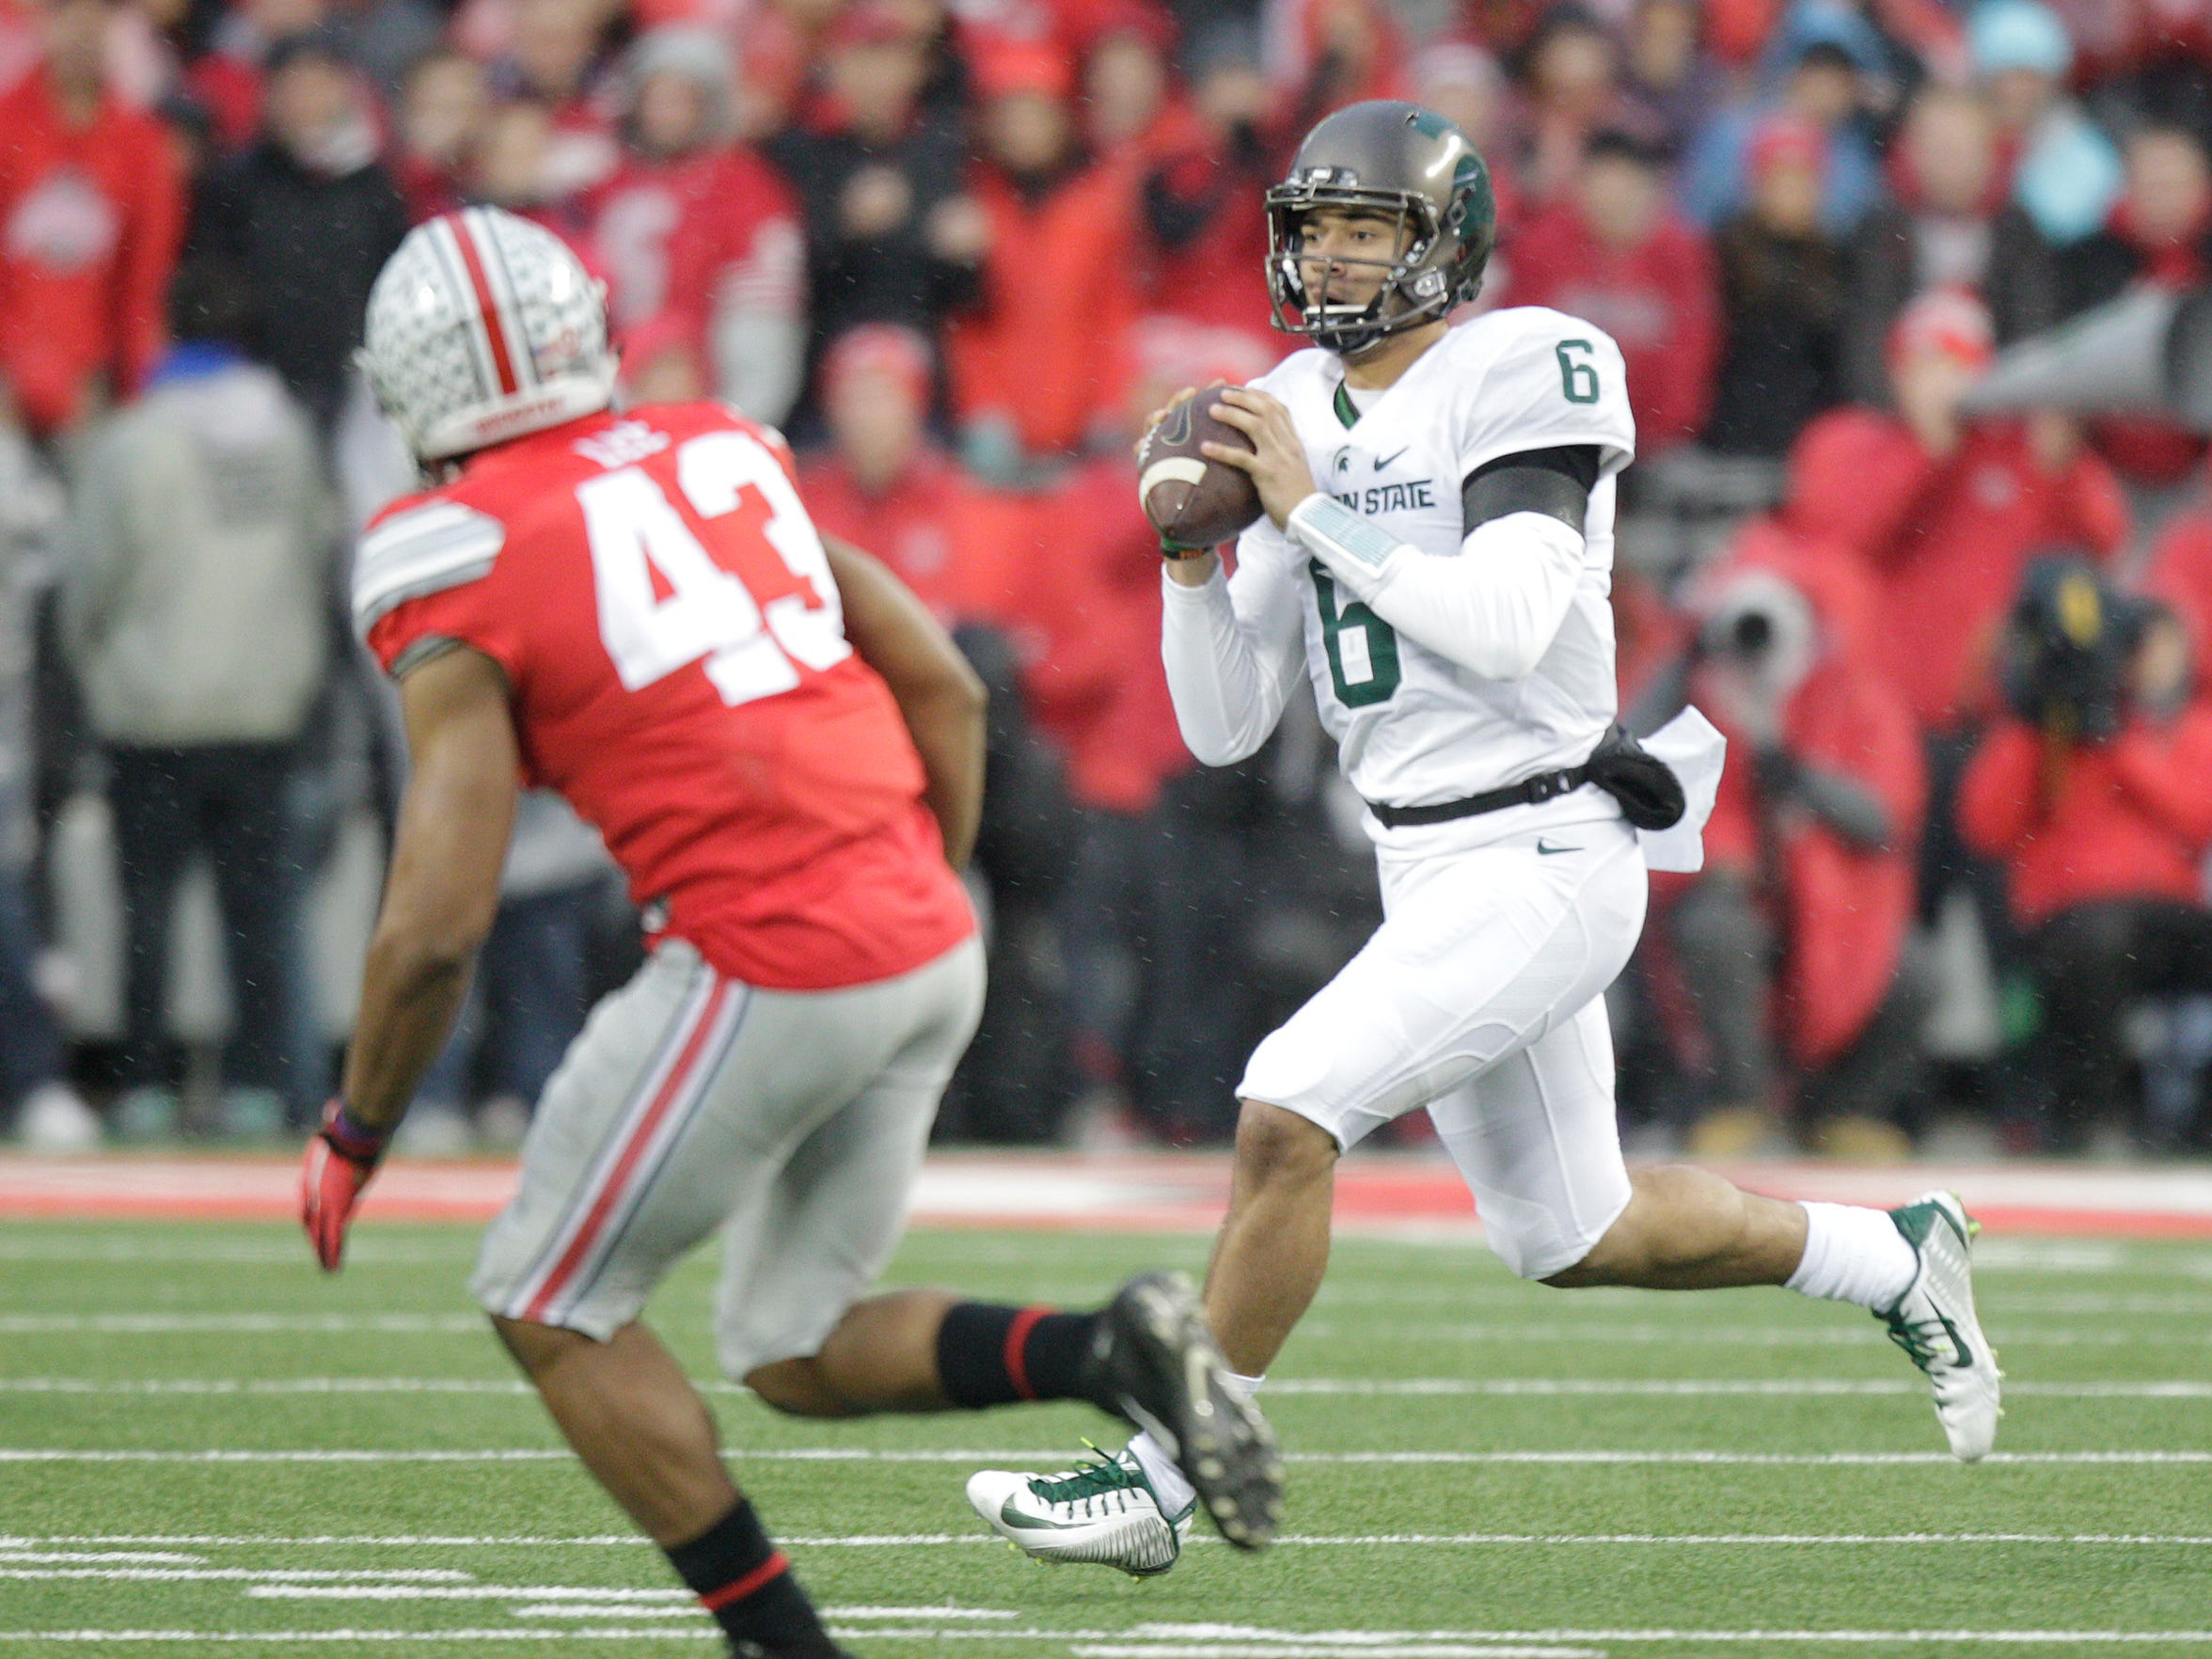 Did Michigan State backup quarterback Damion Terry put his team in the College Football Playoff with a win against Ohio State on Saturday?